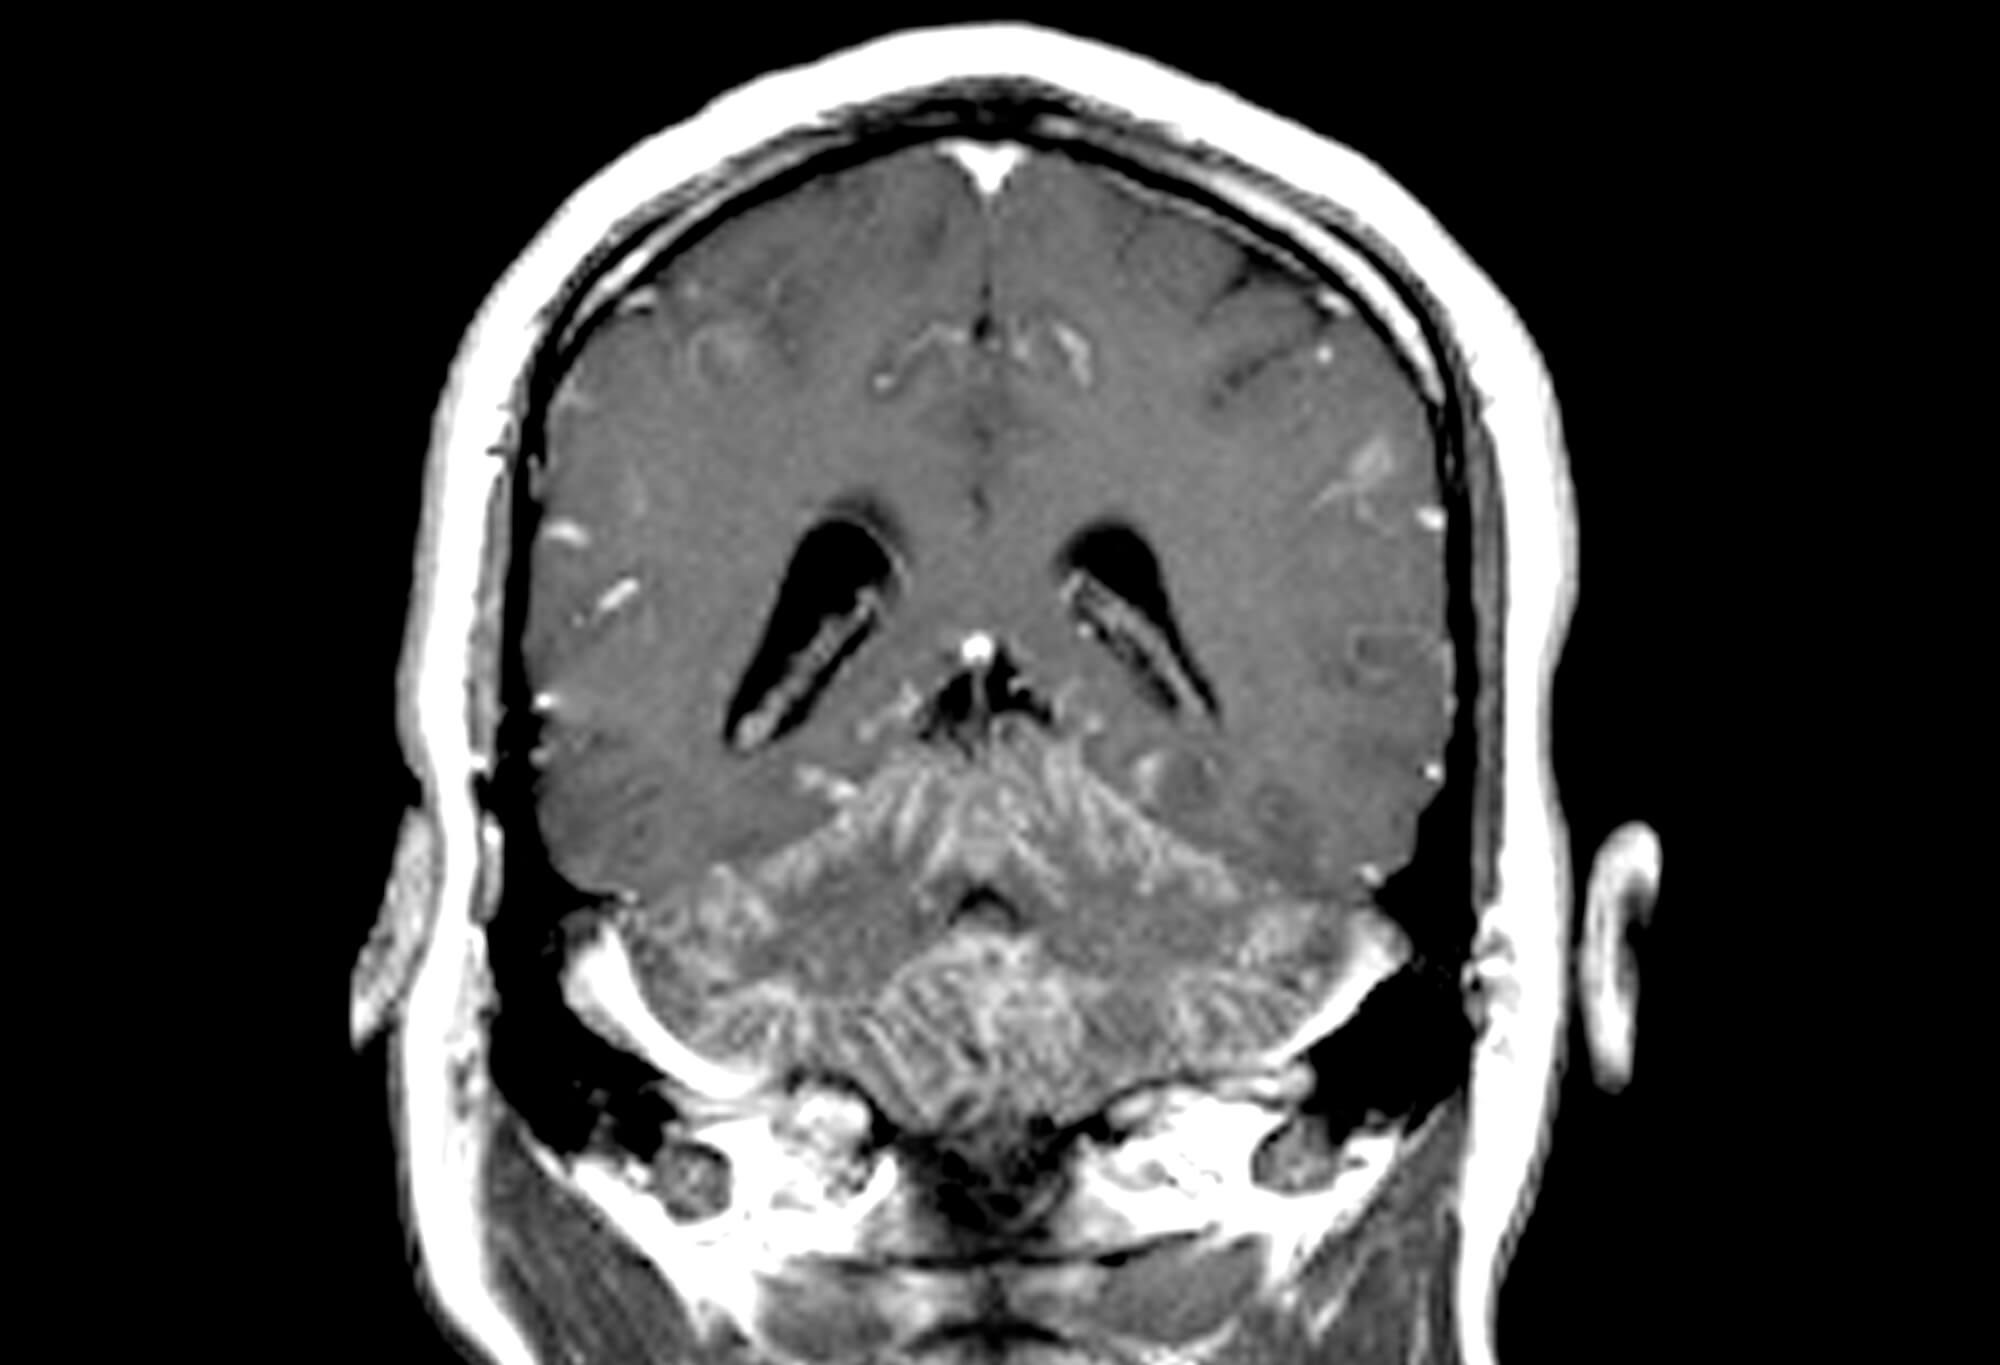 Sarcoidosis is a noncaseating granulomatous disease that causes inflammation and tissue damage in the involved organs. <i>Credit: Living Art Enterprises, LLC/Science Source</i>